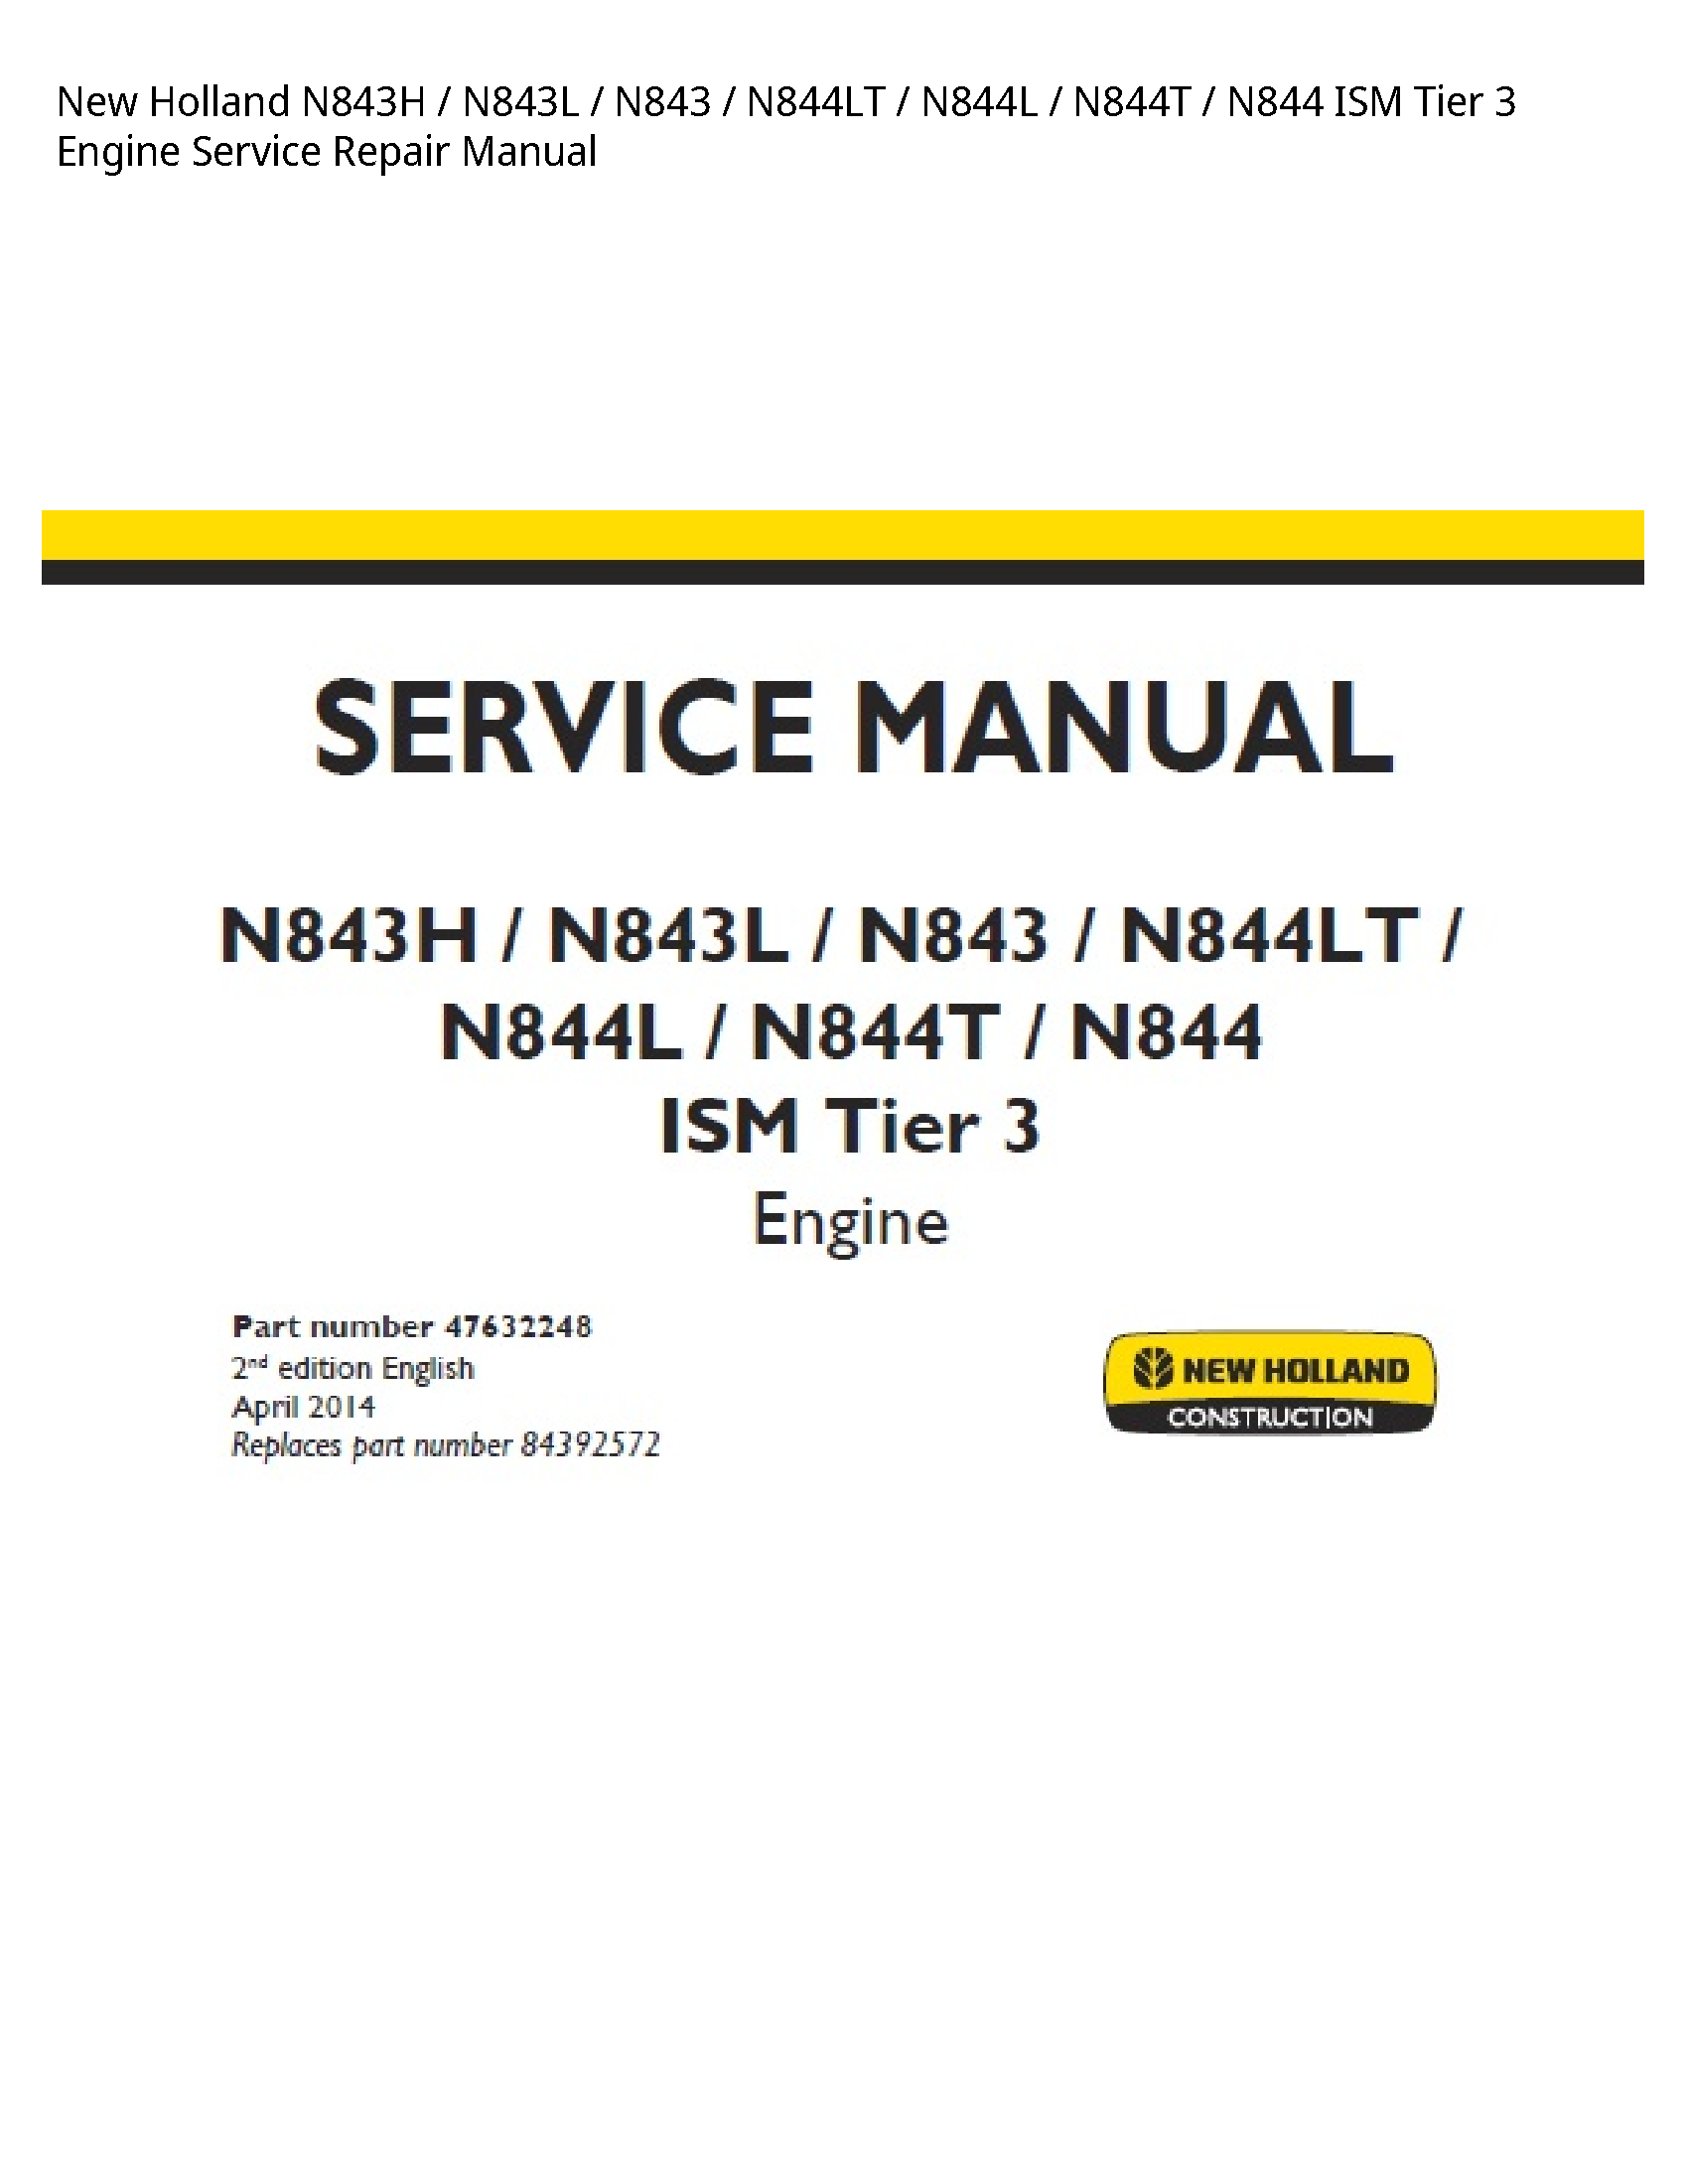 New Holland N843H ISM Tier Engine manual